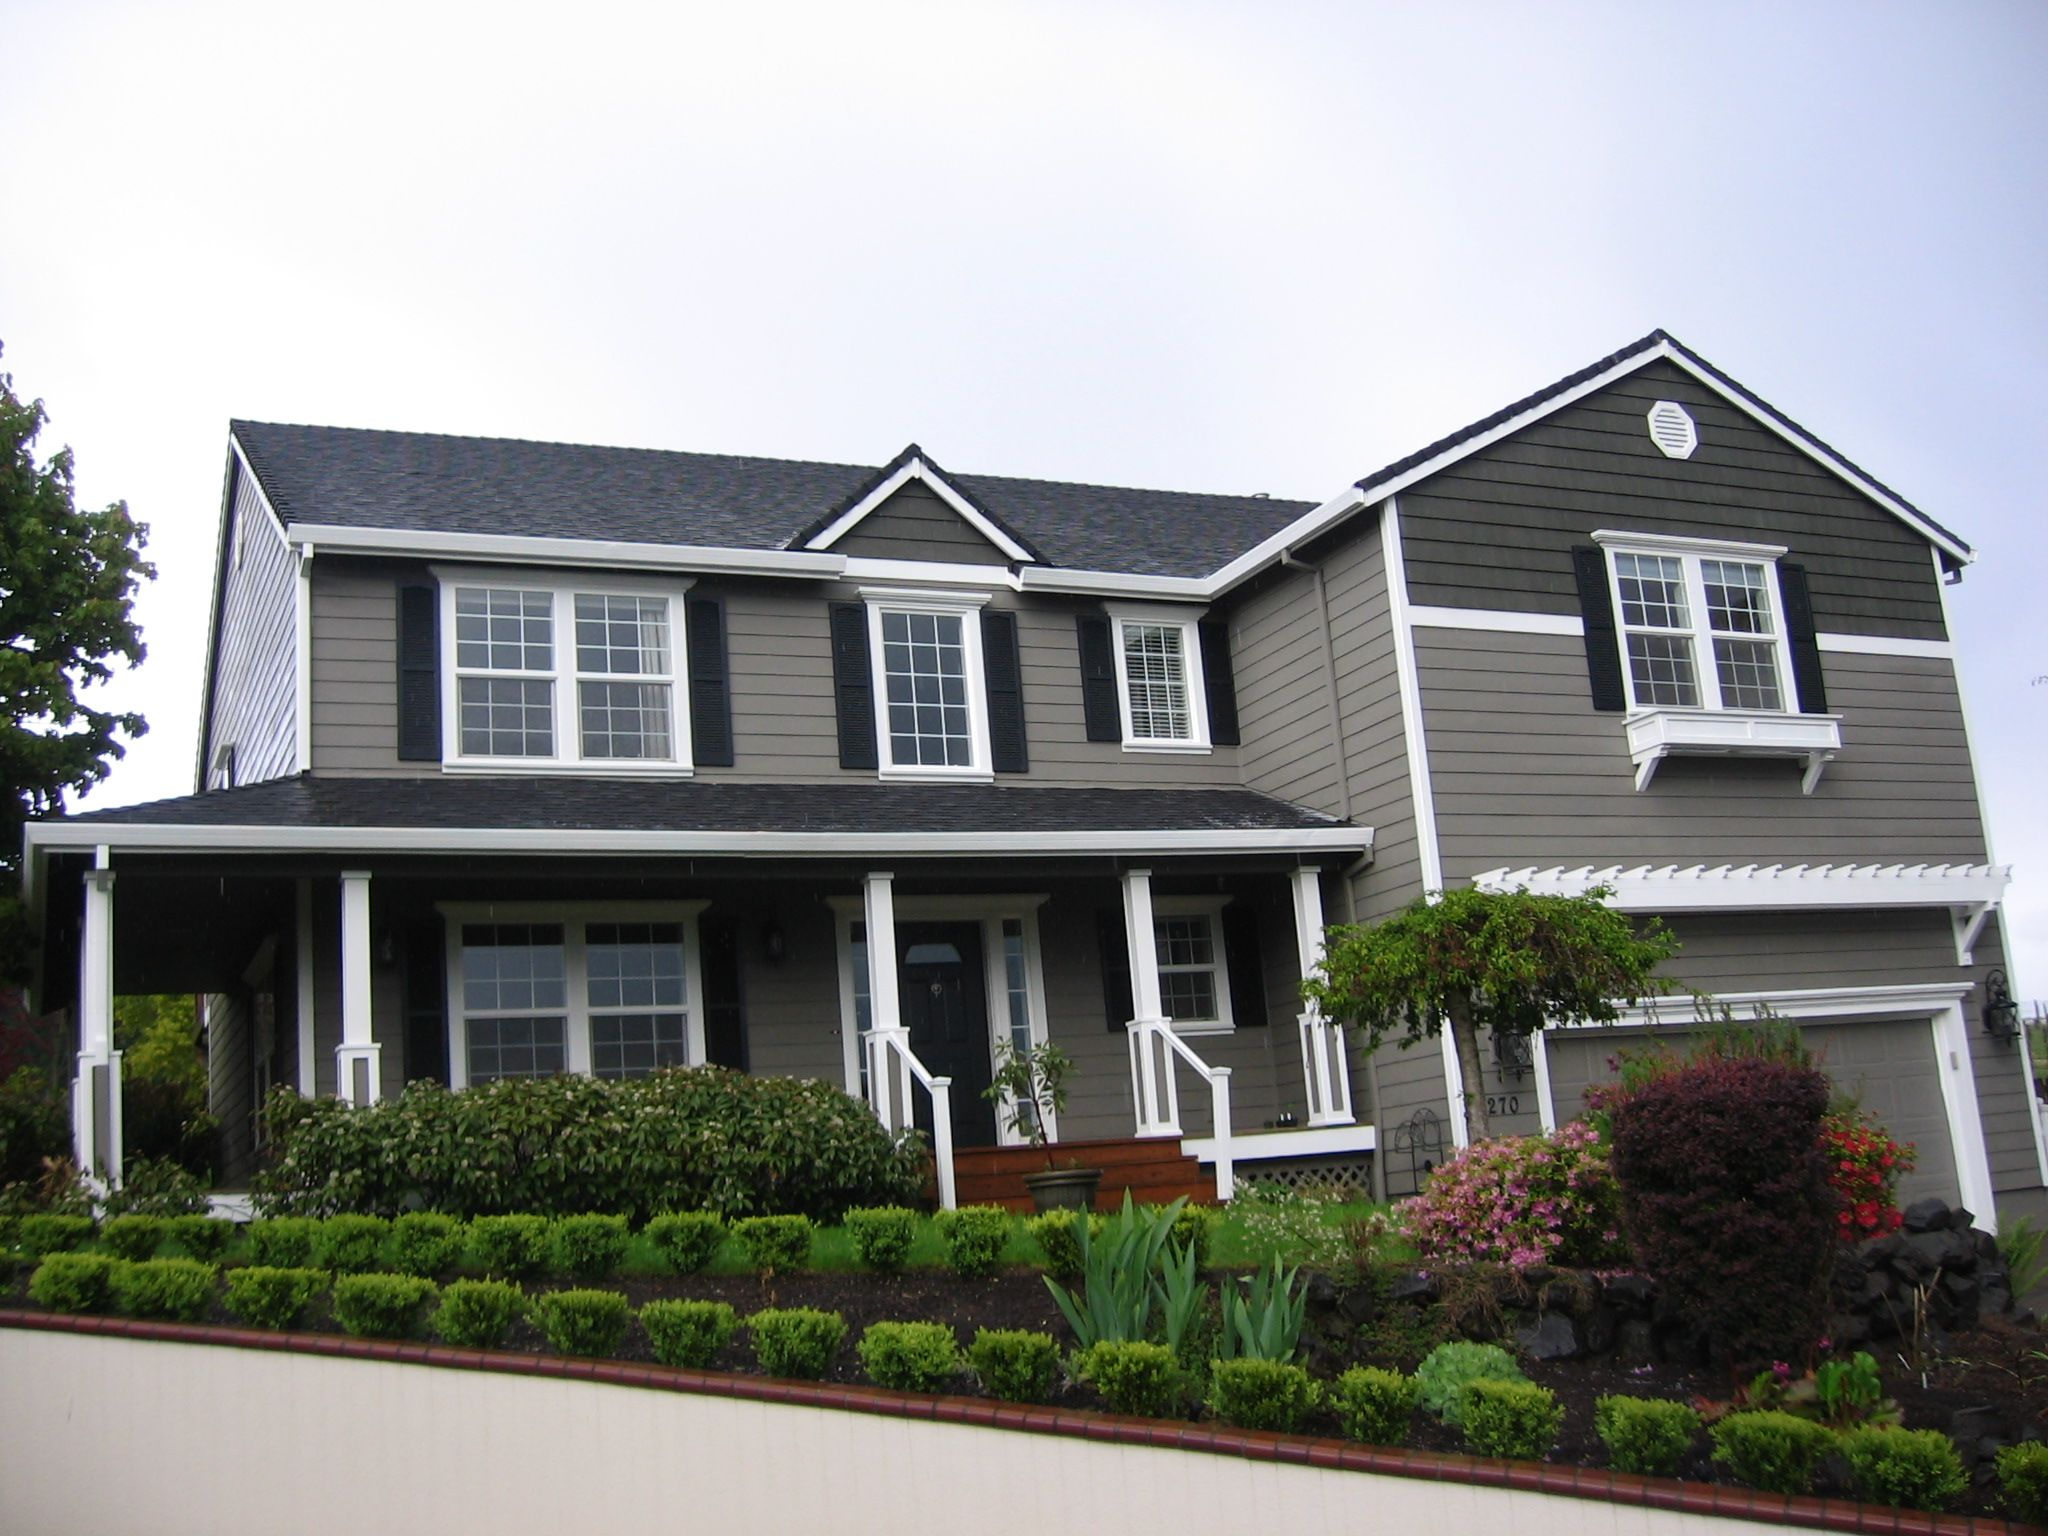 Representation Of Attractive Houses With Shutters That